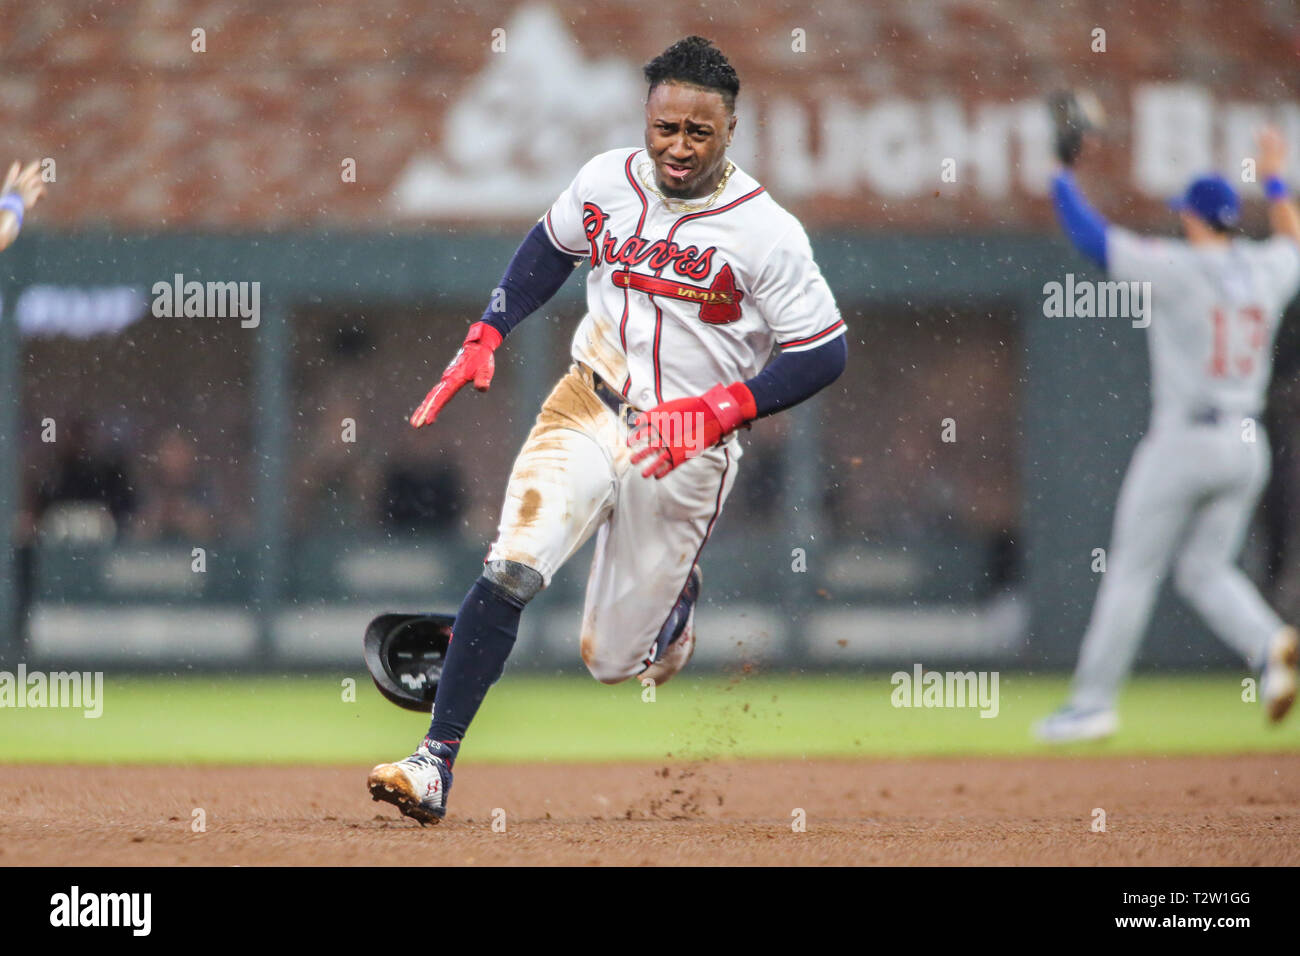 Atlanta, GA, USA. 4th Apr, 2019. Atlanta Braves second baseman Ozzie Albies (1) rounds second base during MLB action between the Chicago Cubs and the Atlanta Braves at SunTrust Park in Atlanta, GA. Jonathan Huff/CSM/Alamy Live News - Stock Image